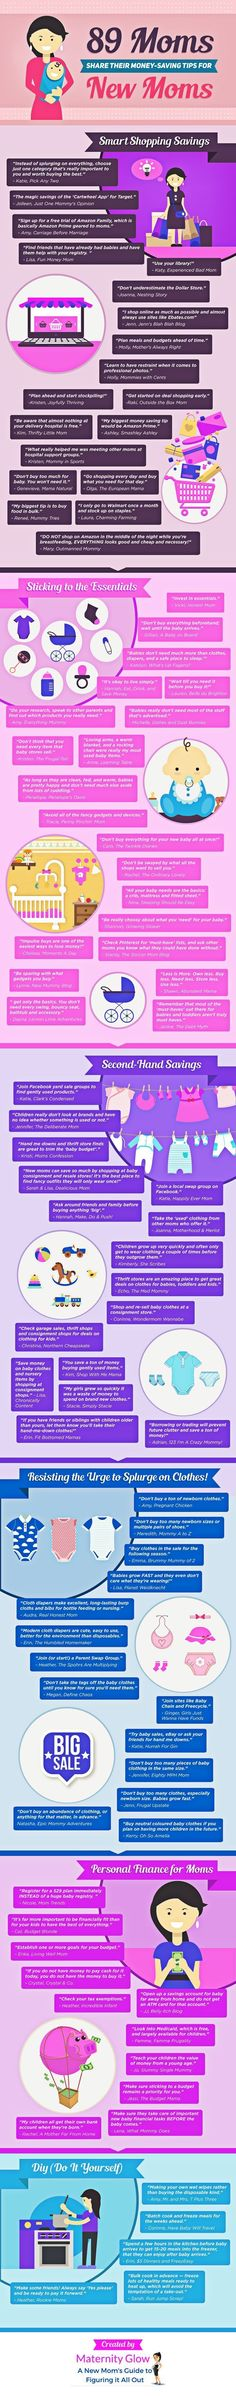 89 Moms Share Their Money-Saving Tips for New Moms (Infographic) | Maternity Glow #pregnancycalculator,